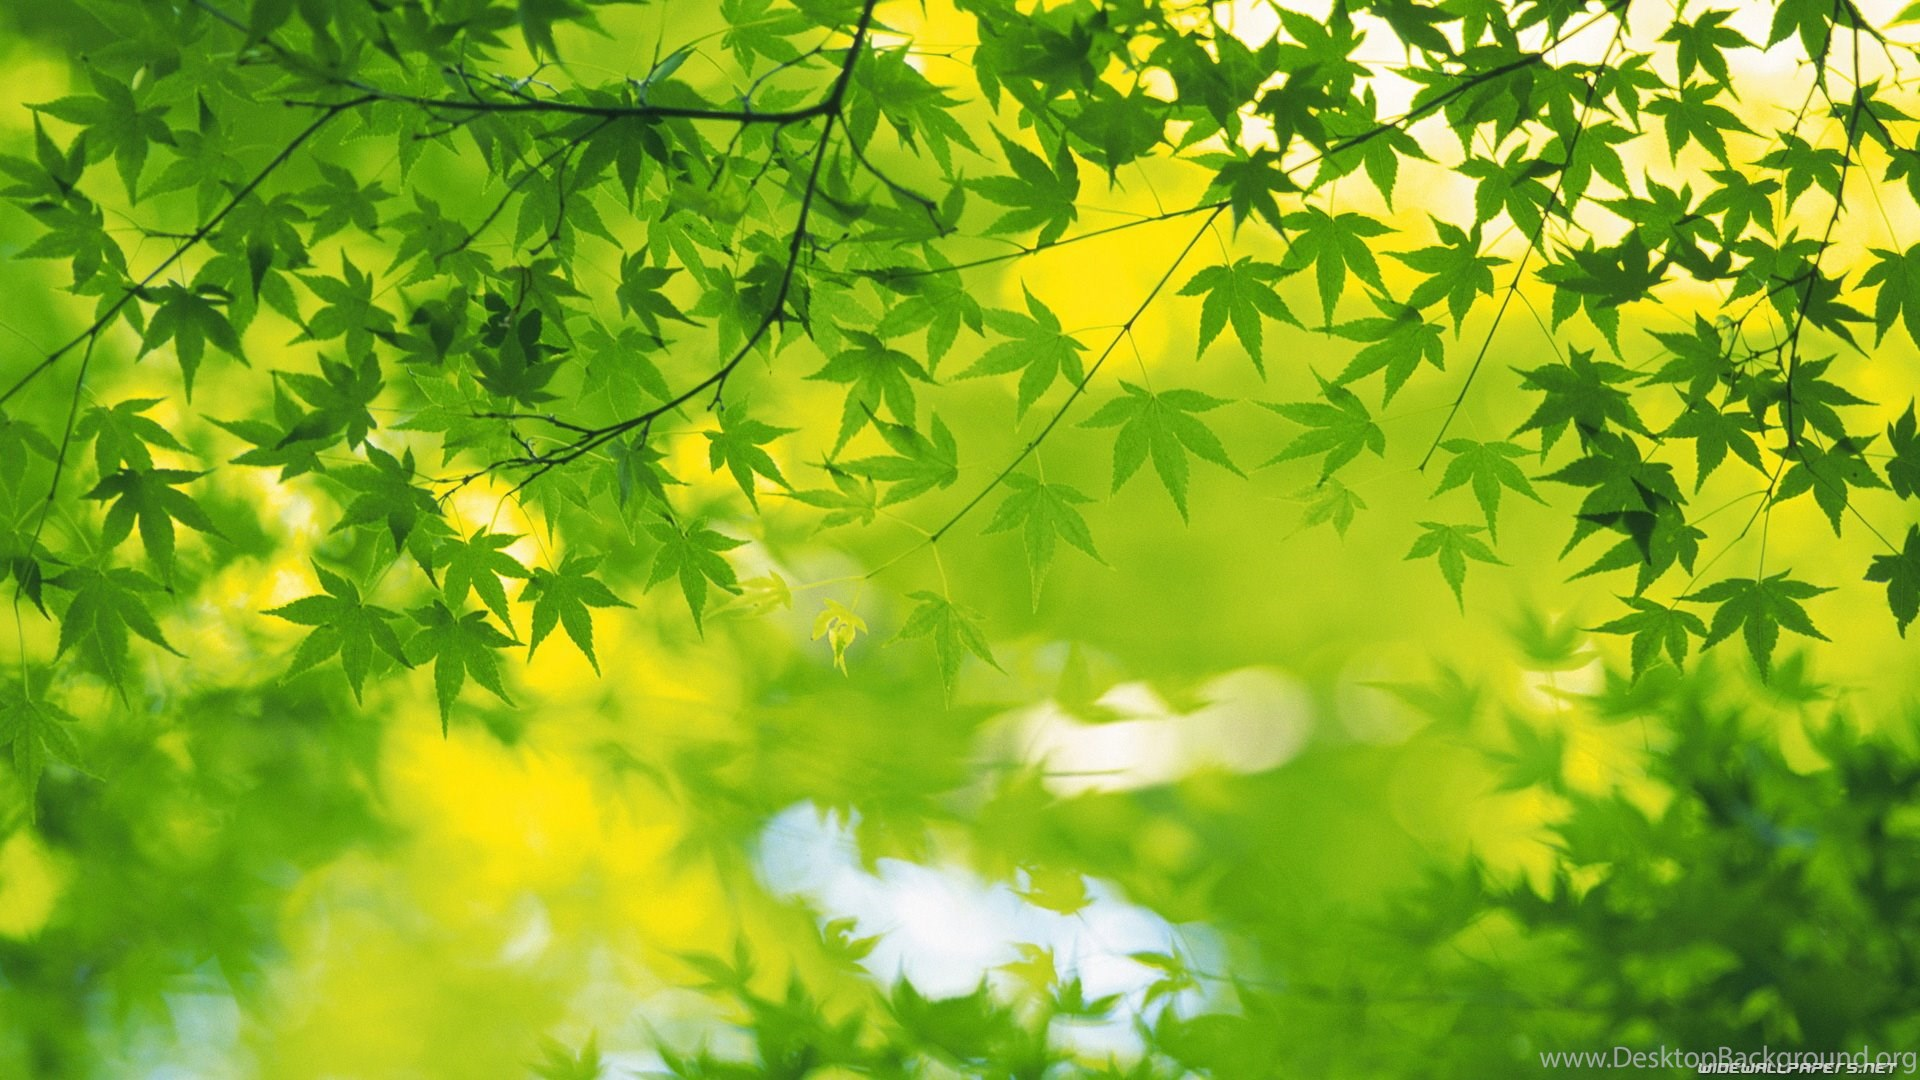 Wallpapers Green Leafs Wide And Hd Leaves Nature 1920x1080 Desktop Background